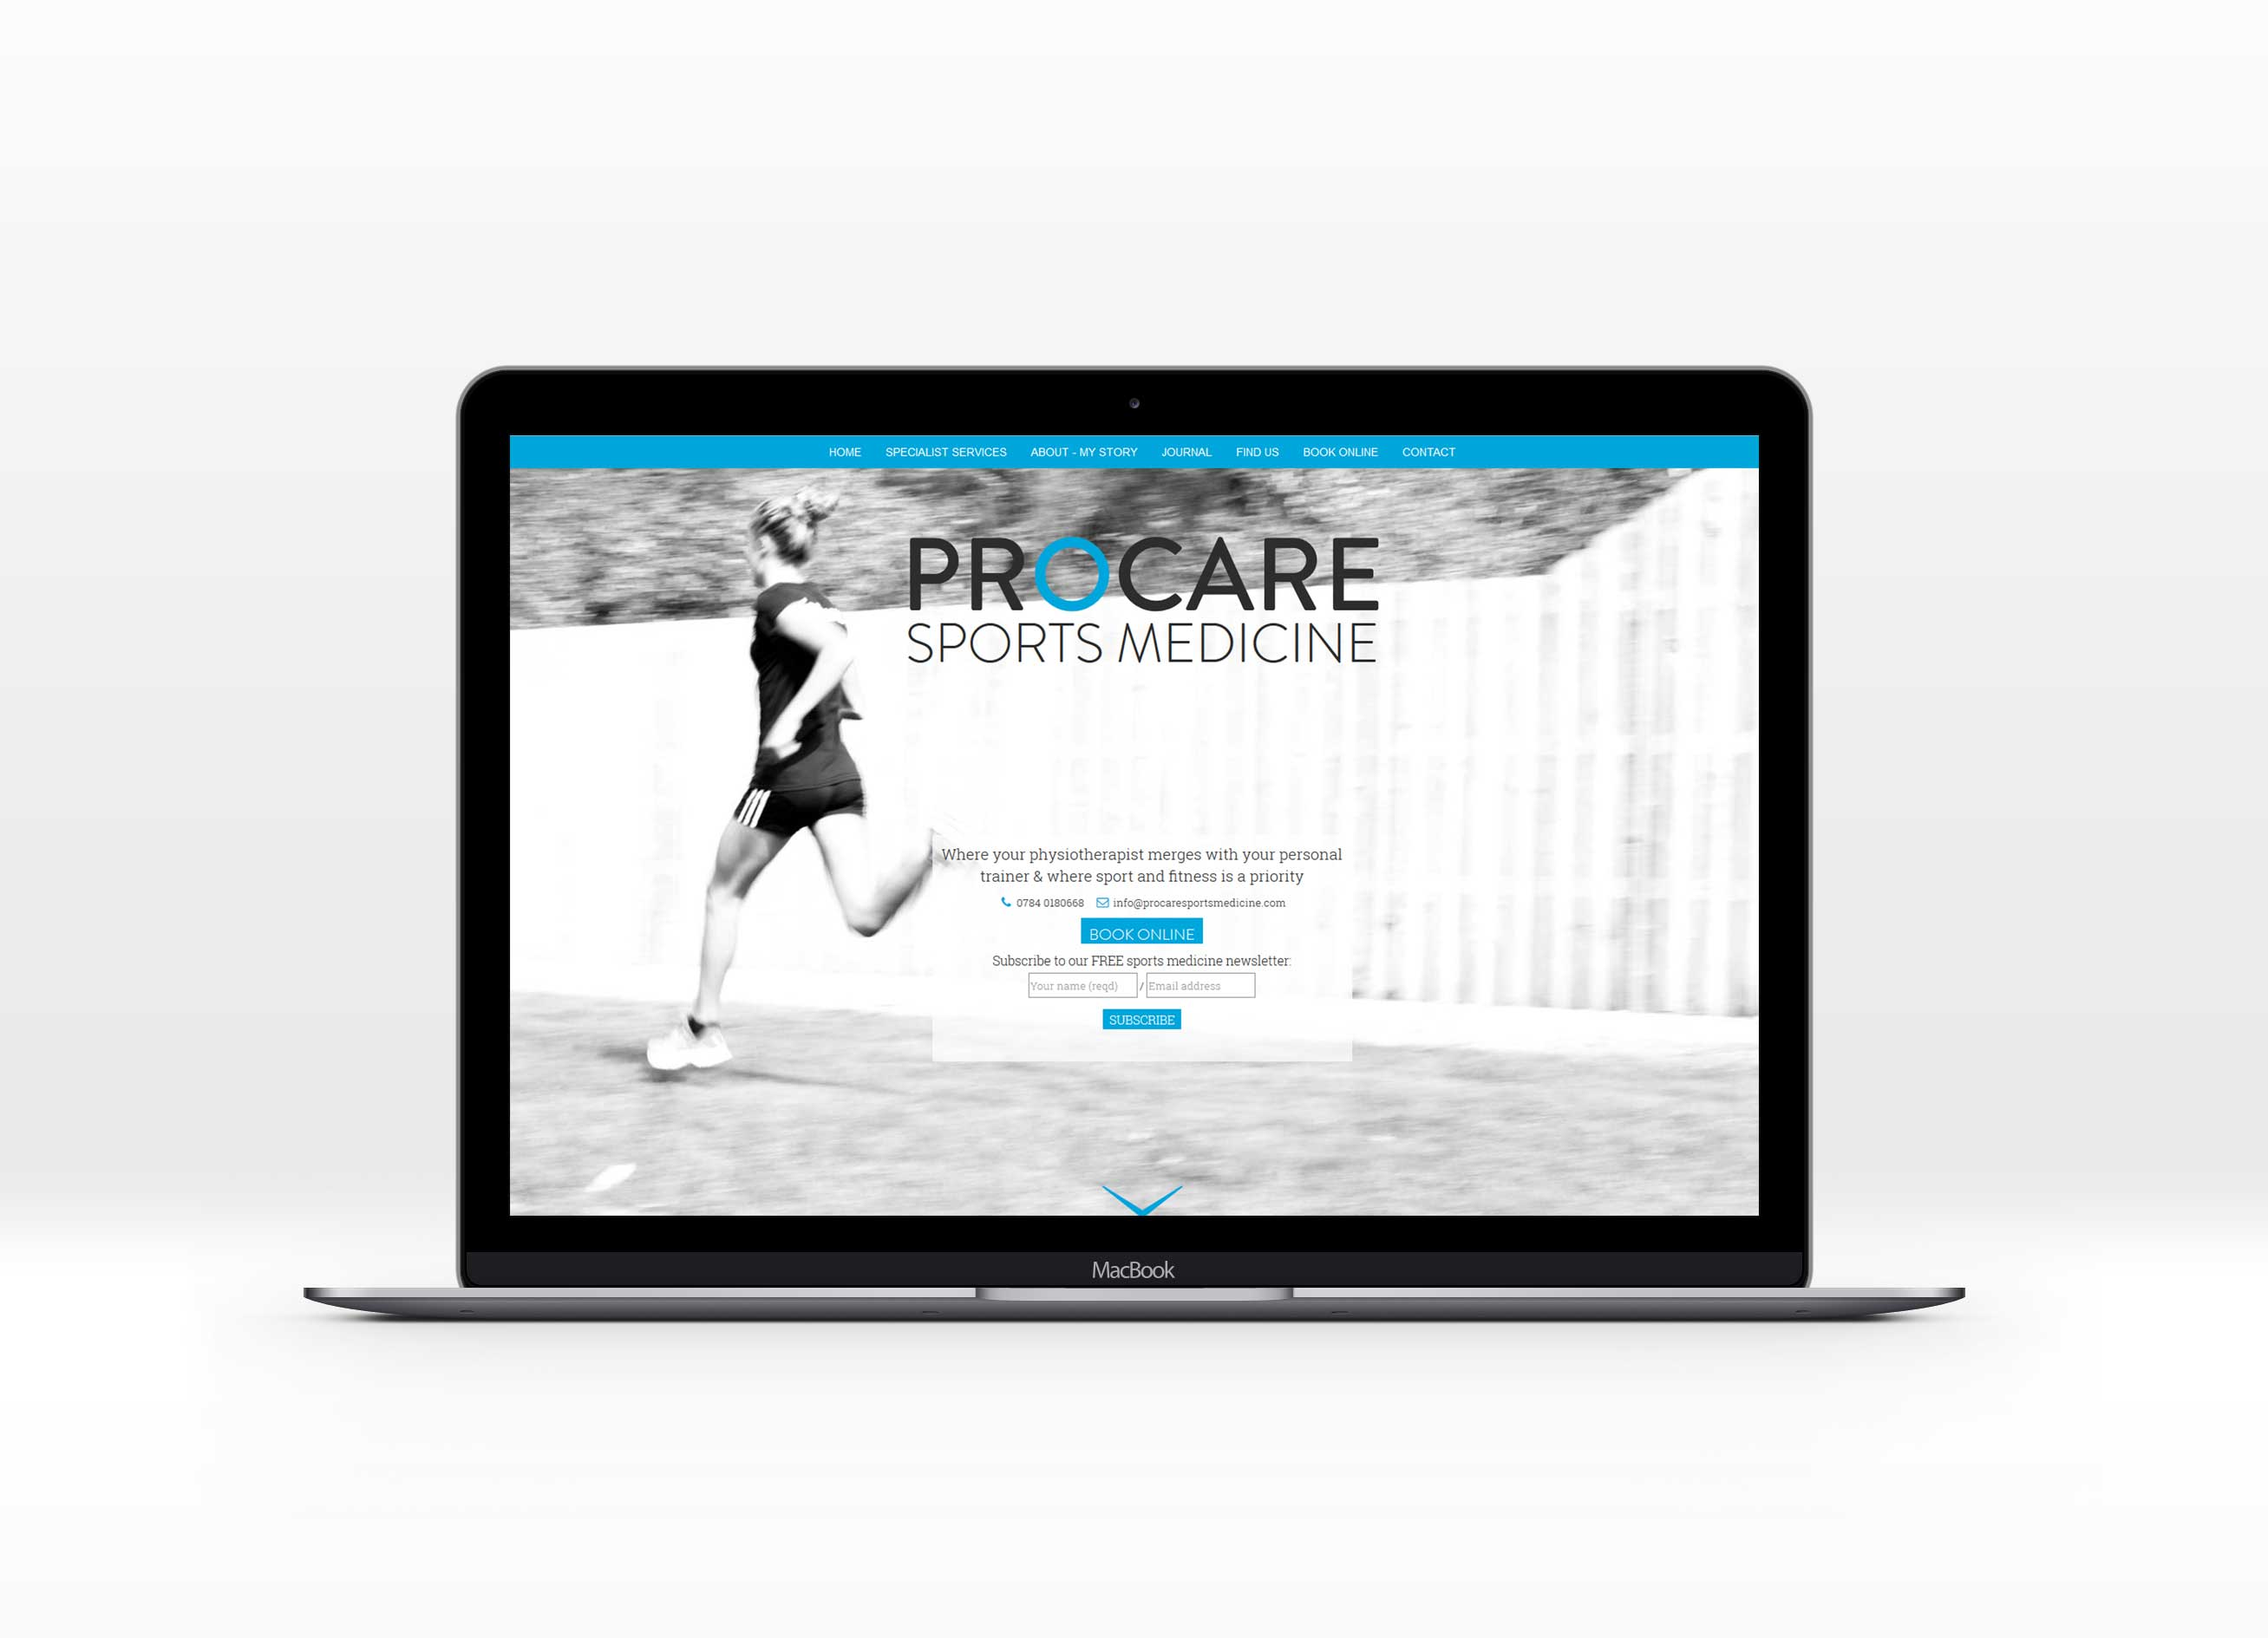 Website Homepage designed by Foxcub Studio for Procare Sports Medicine. Site build by Mike Hayes.